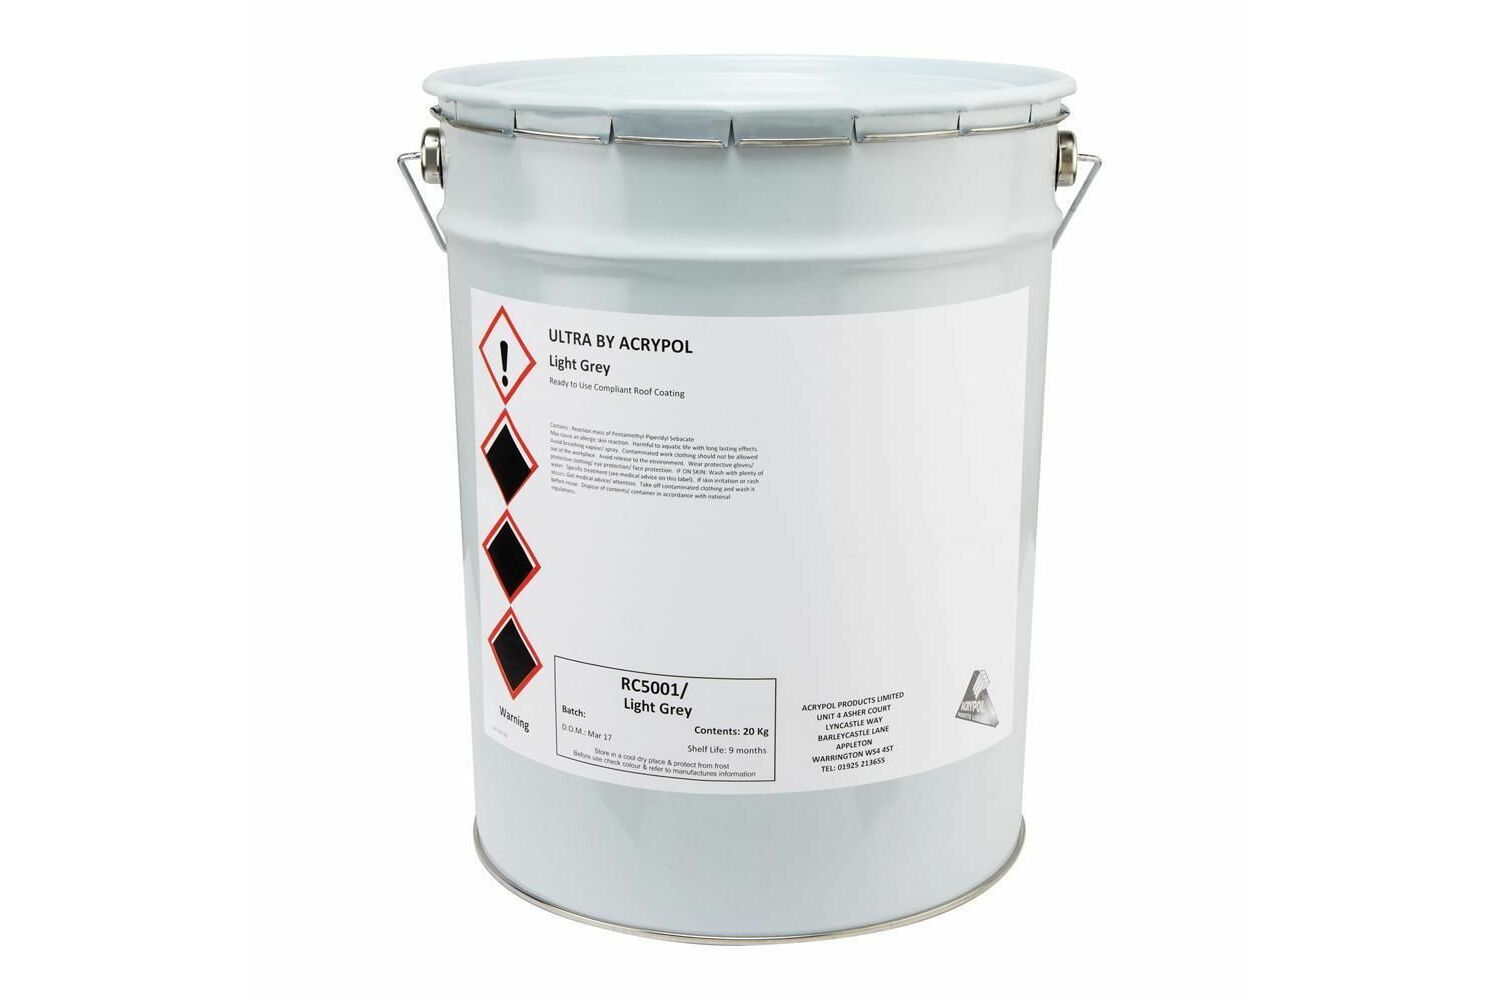 Acrypol Ultra by Acrypol 20kg Whole Roof Long Term Waterproof Roof Coating